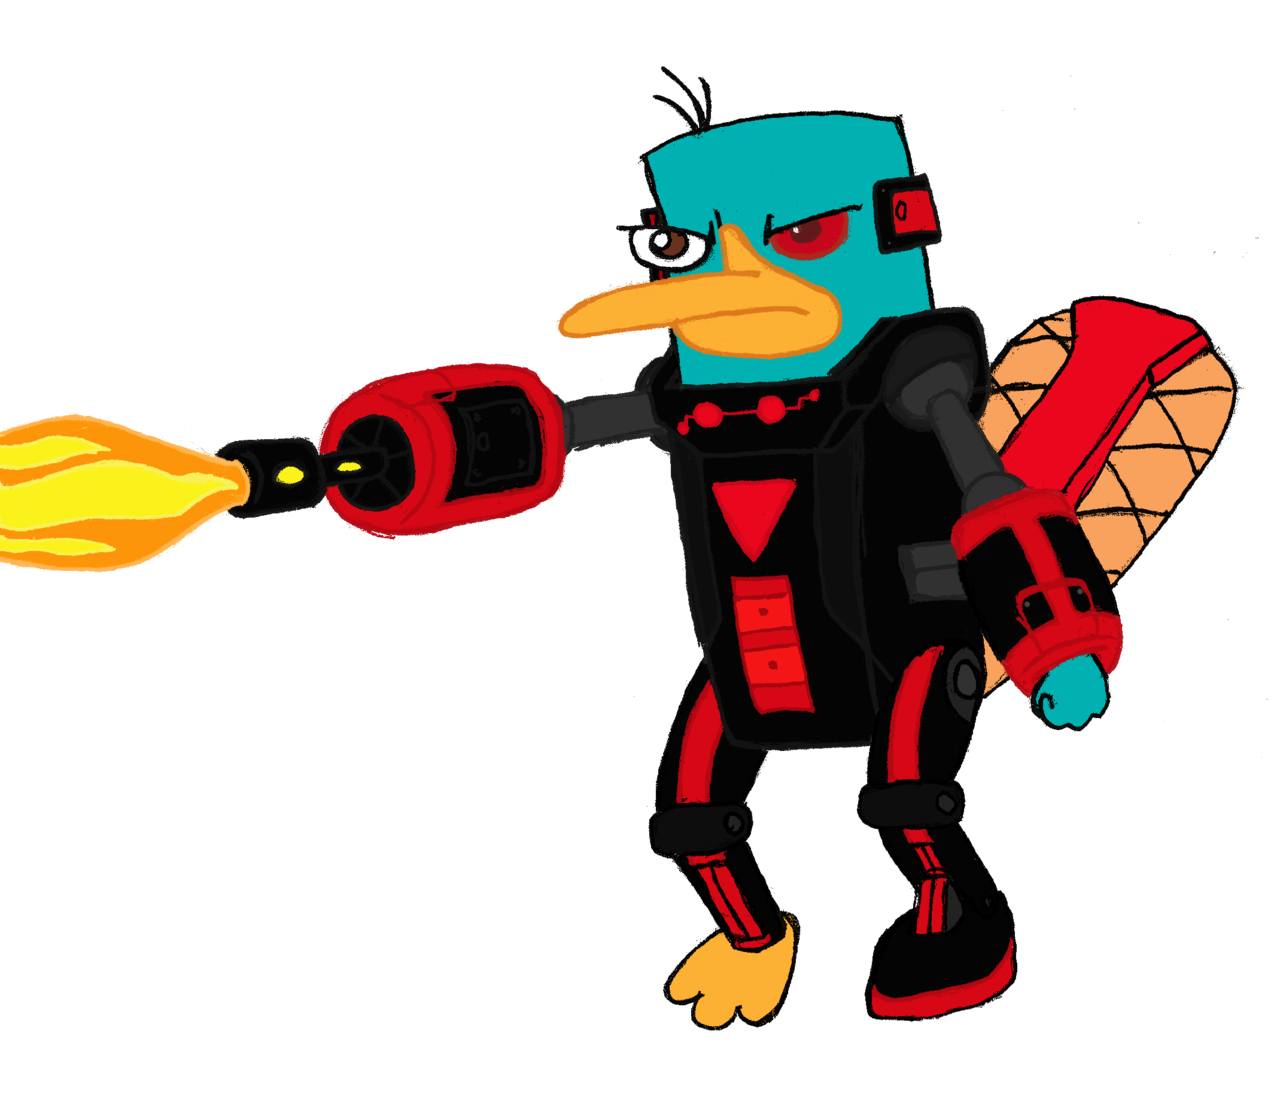 Perry the Platypus (Mysterious Dimension) clipart by RedJoey1992.